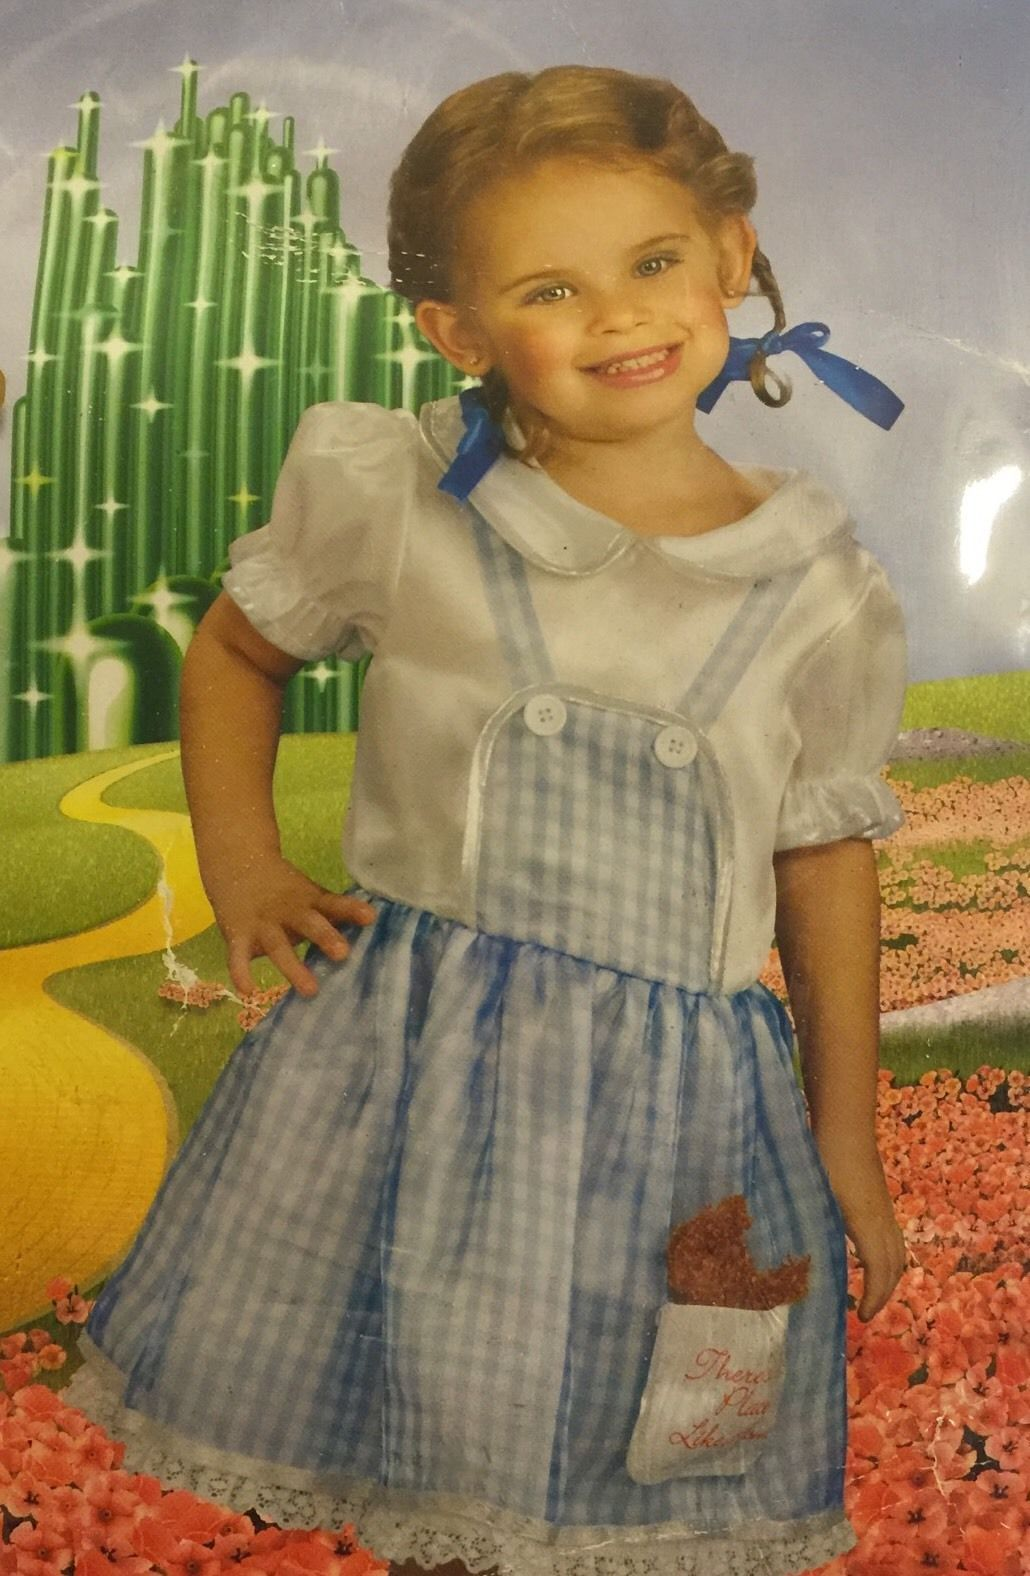 Dorothy The Wizard Of Oz Costume Toddler Size 2-4 Rubie`s Dress Hair Bows Toto